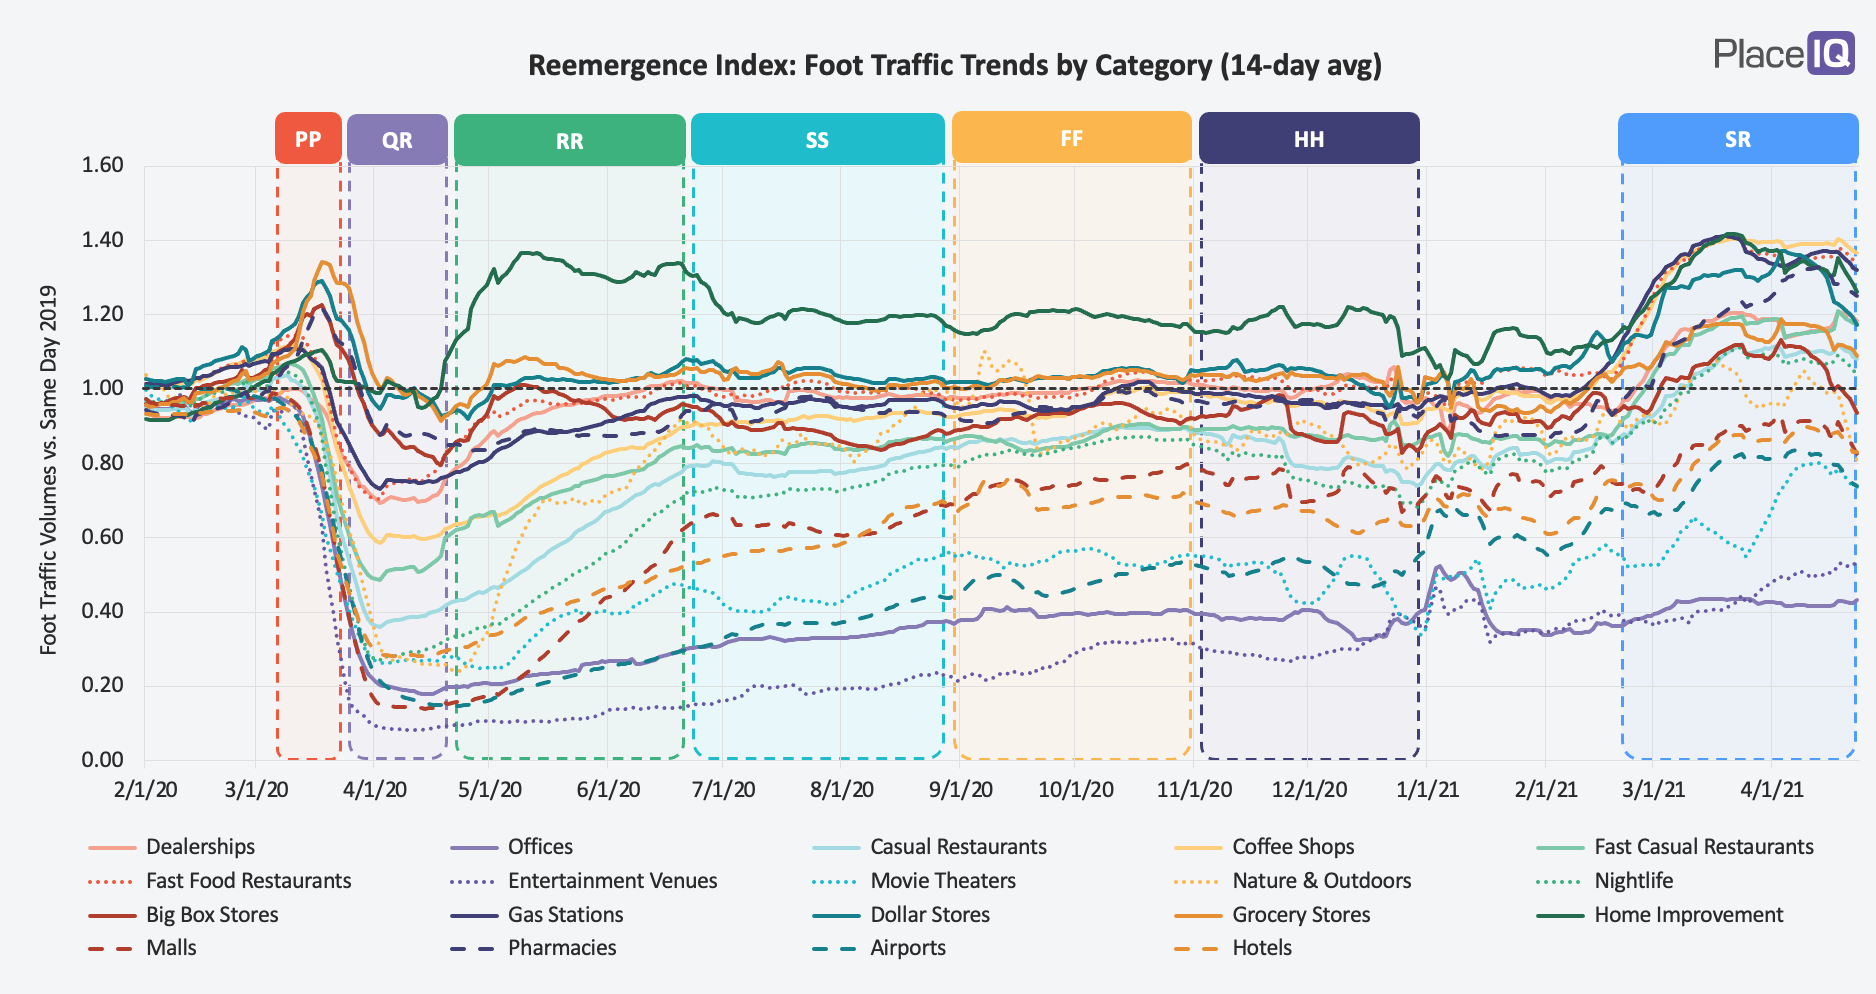 CHART: Reemergence Index, Foot Traffic Year-Over-Year, 14-Day Moving Average